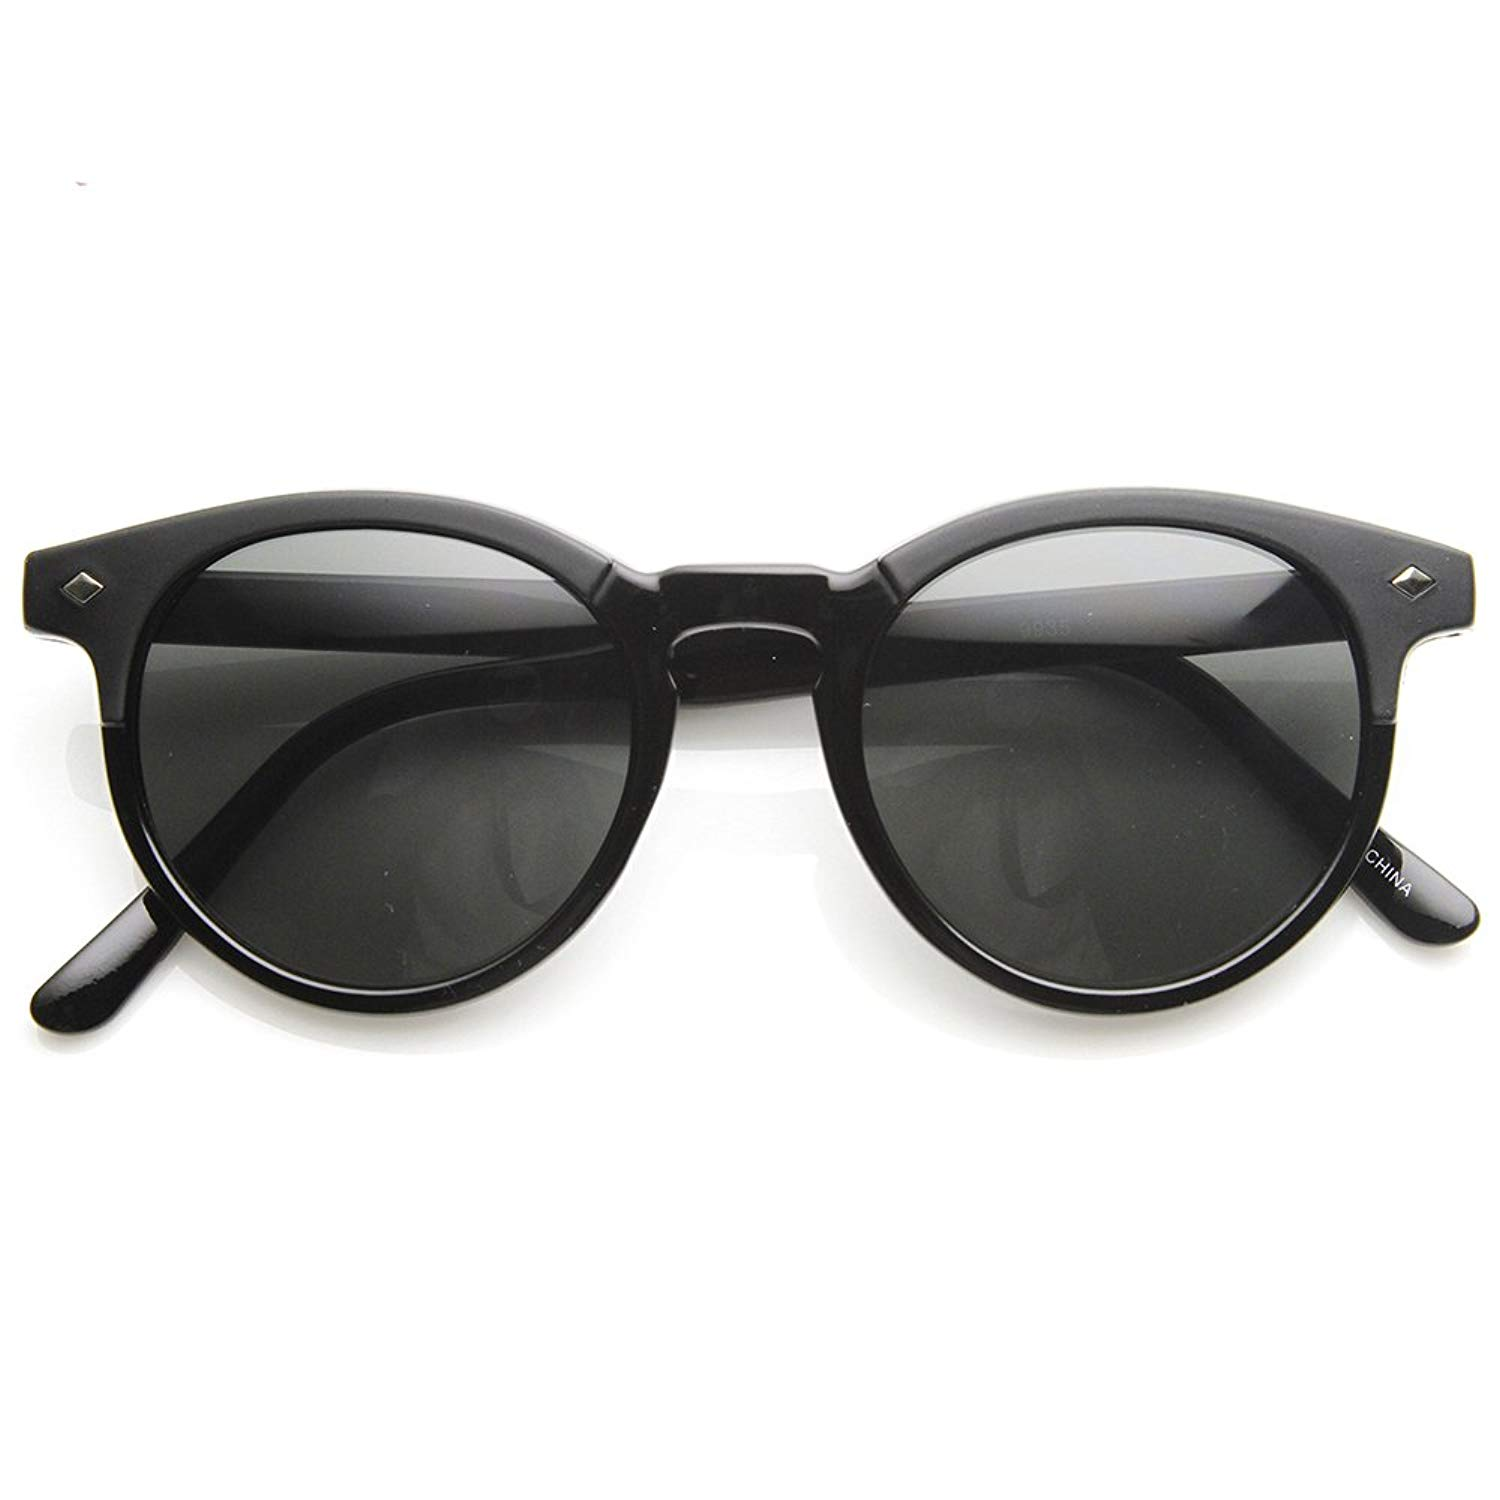 5f575ed4a29 Get Quotations · zeroUV - Studded P3 Horned Rim Keyhole Round Horn Rimmed  Sunglasses